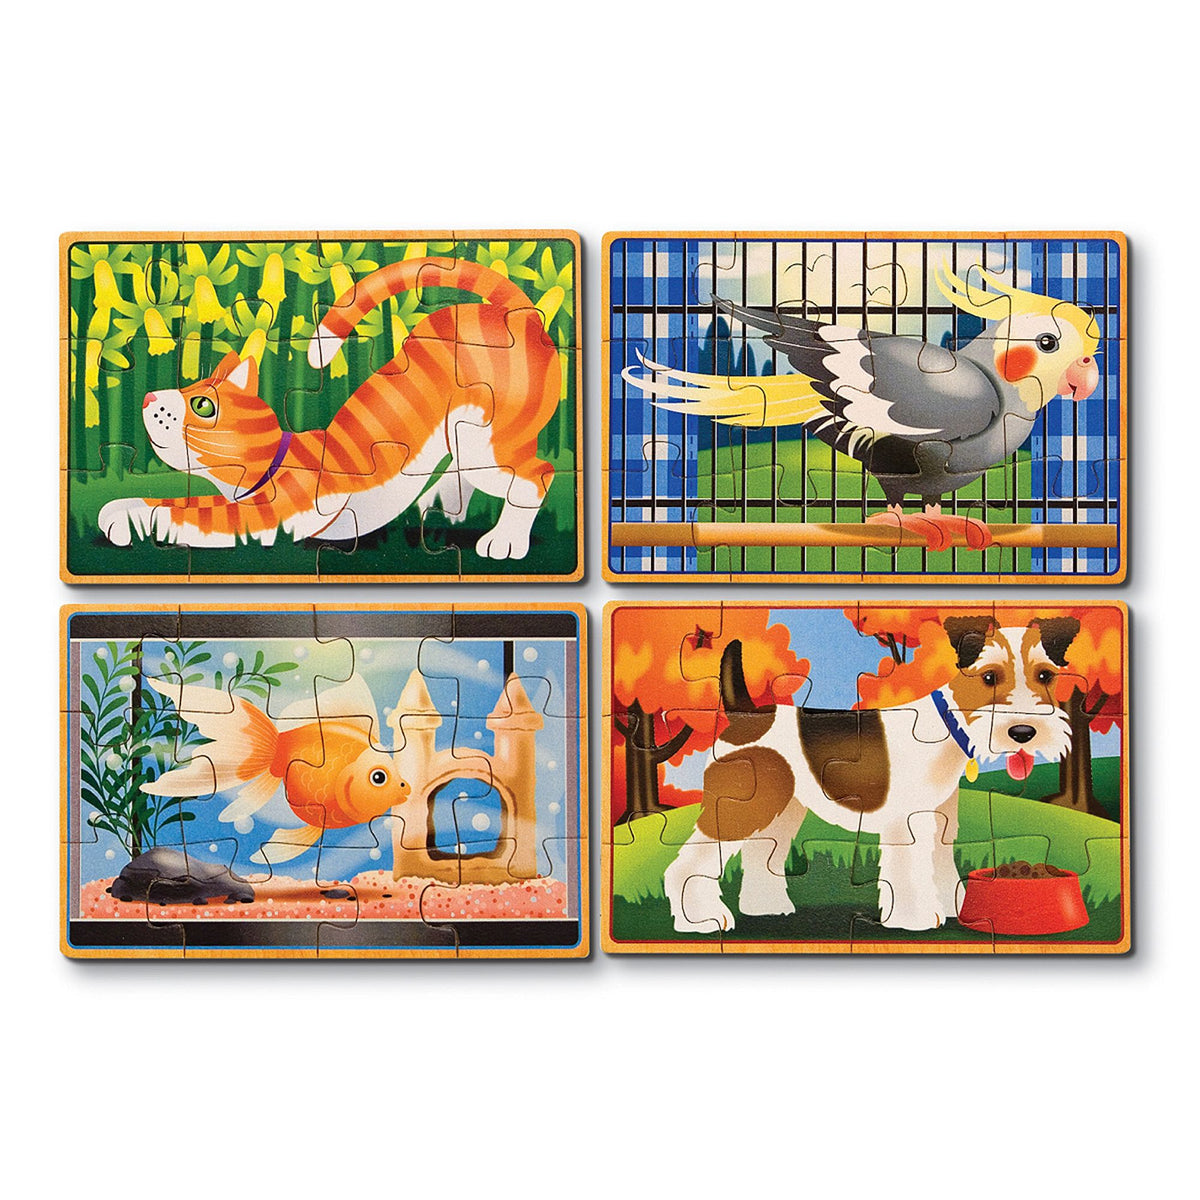 Melissa & Doug Four Wooden Puzzles in a Box (assorted designs)